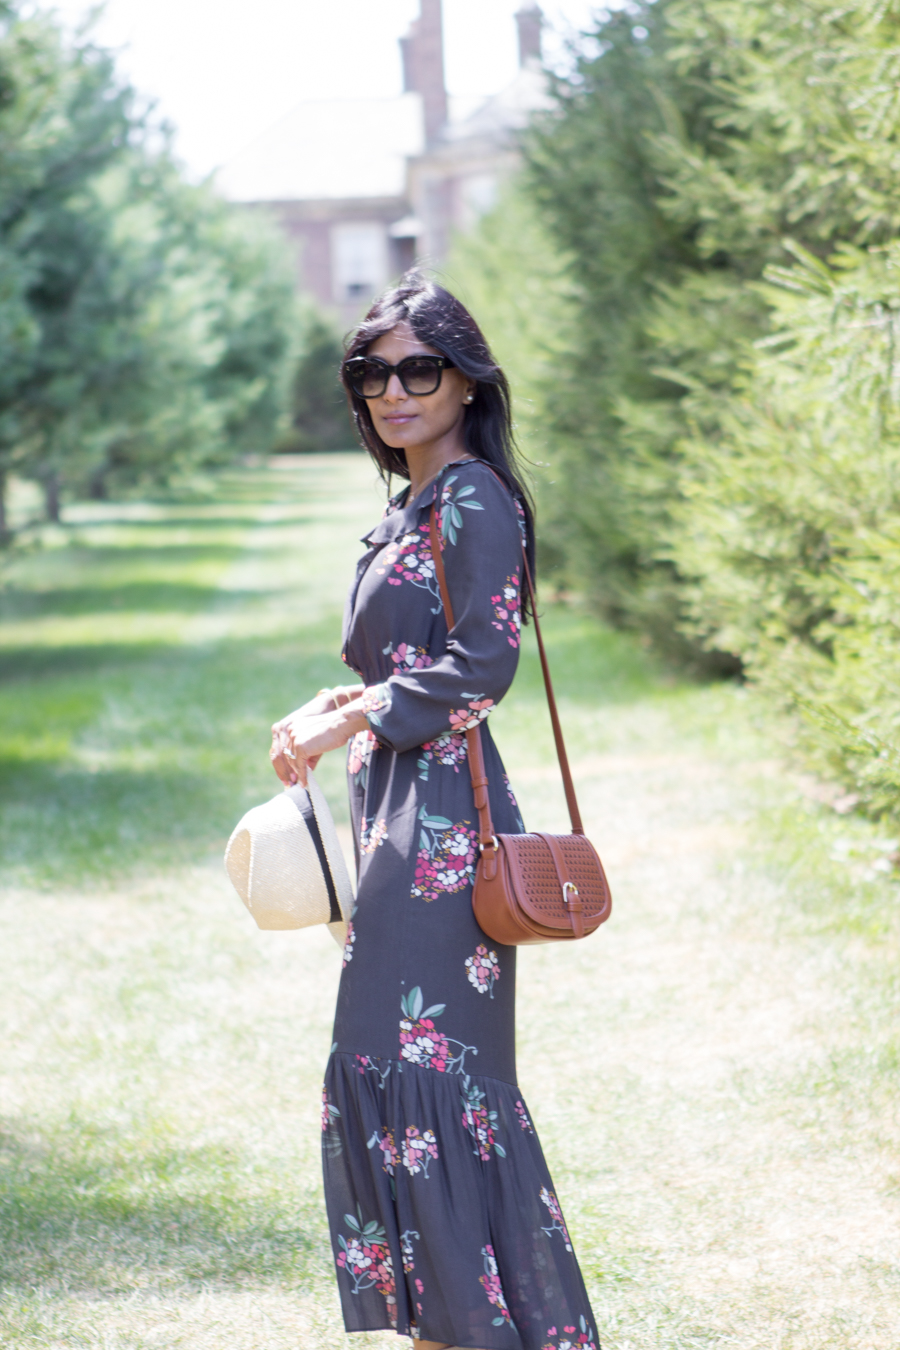 fall style, maxi dress, floral dress, transitional, dressy outfit, casual outfit, petite fashion, dvlook, target style, gladiator wedge, fall shoe trends, petite style, petite style studio, personal style, style tips